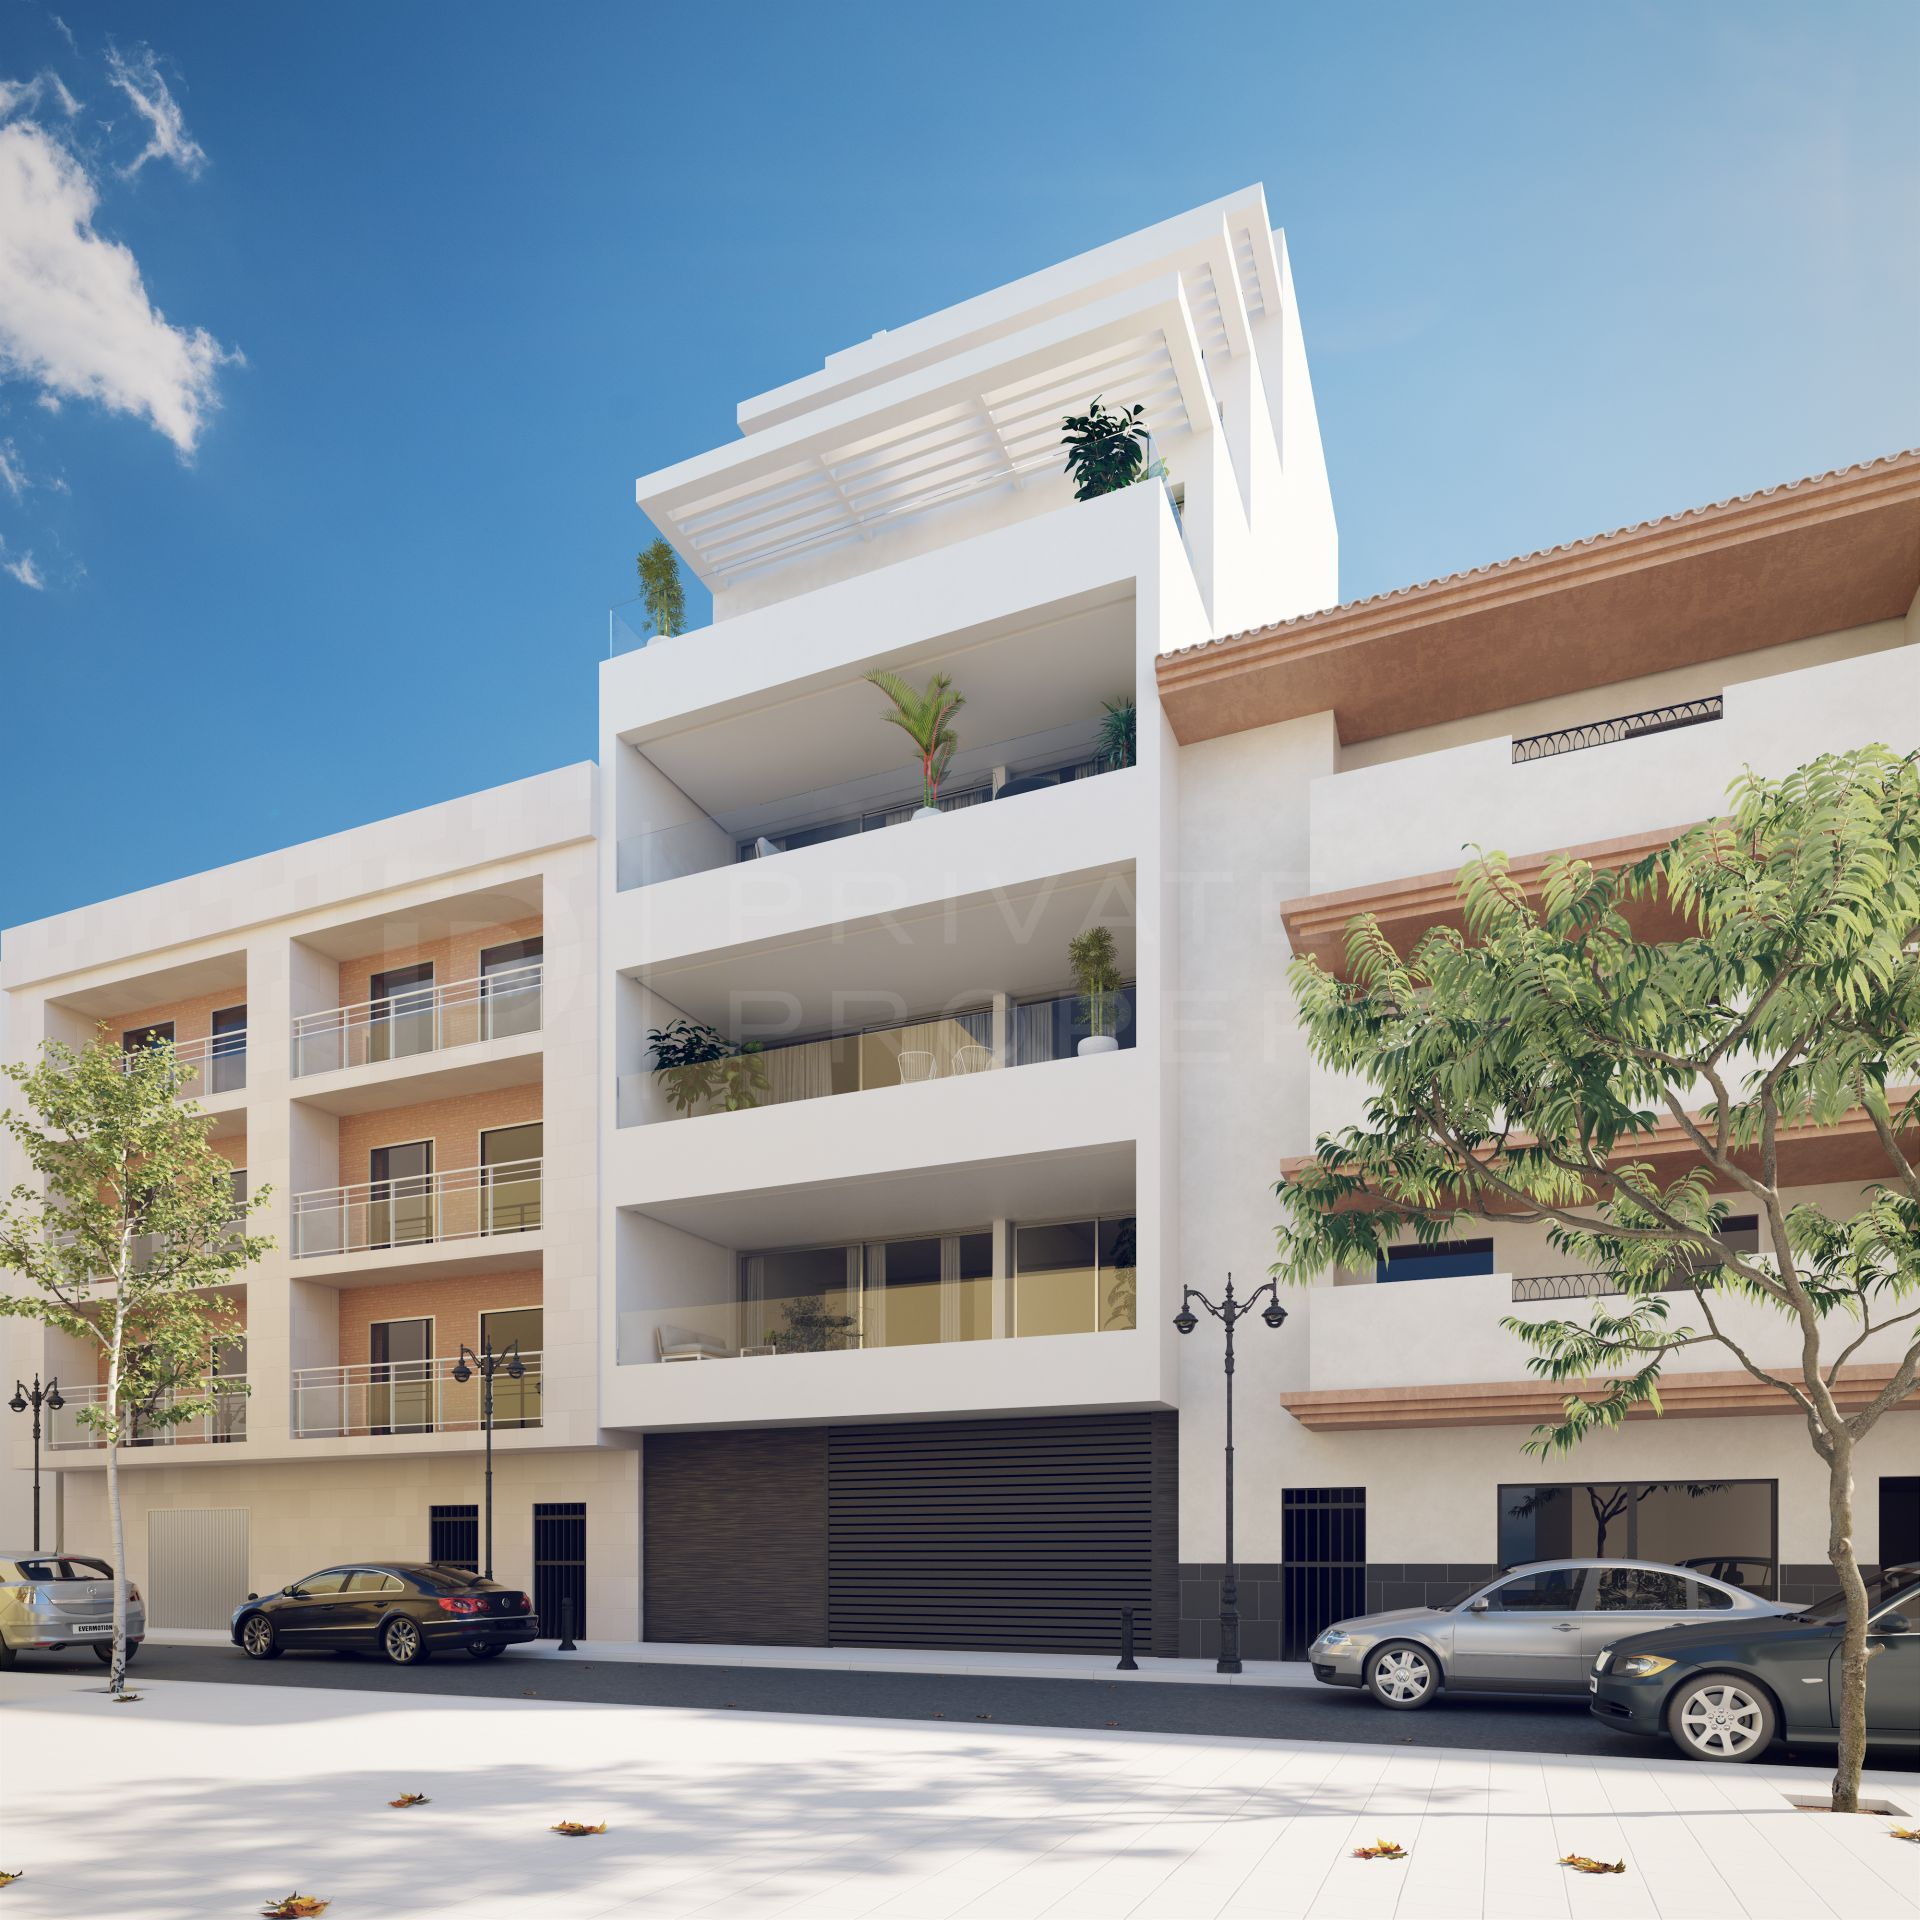 36 exclusive homes on sea front location, with spacious terraces that meet the requirements of the most demanding of clients.